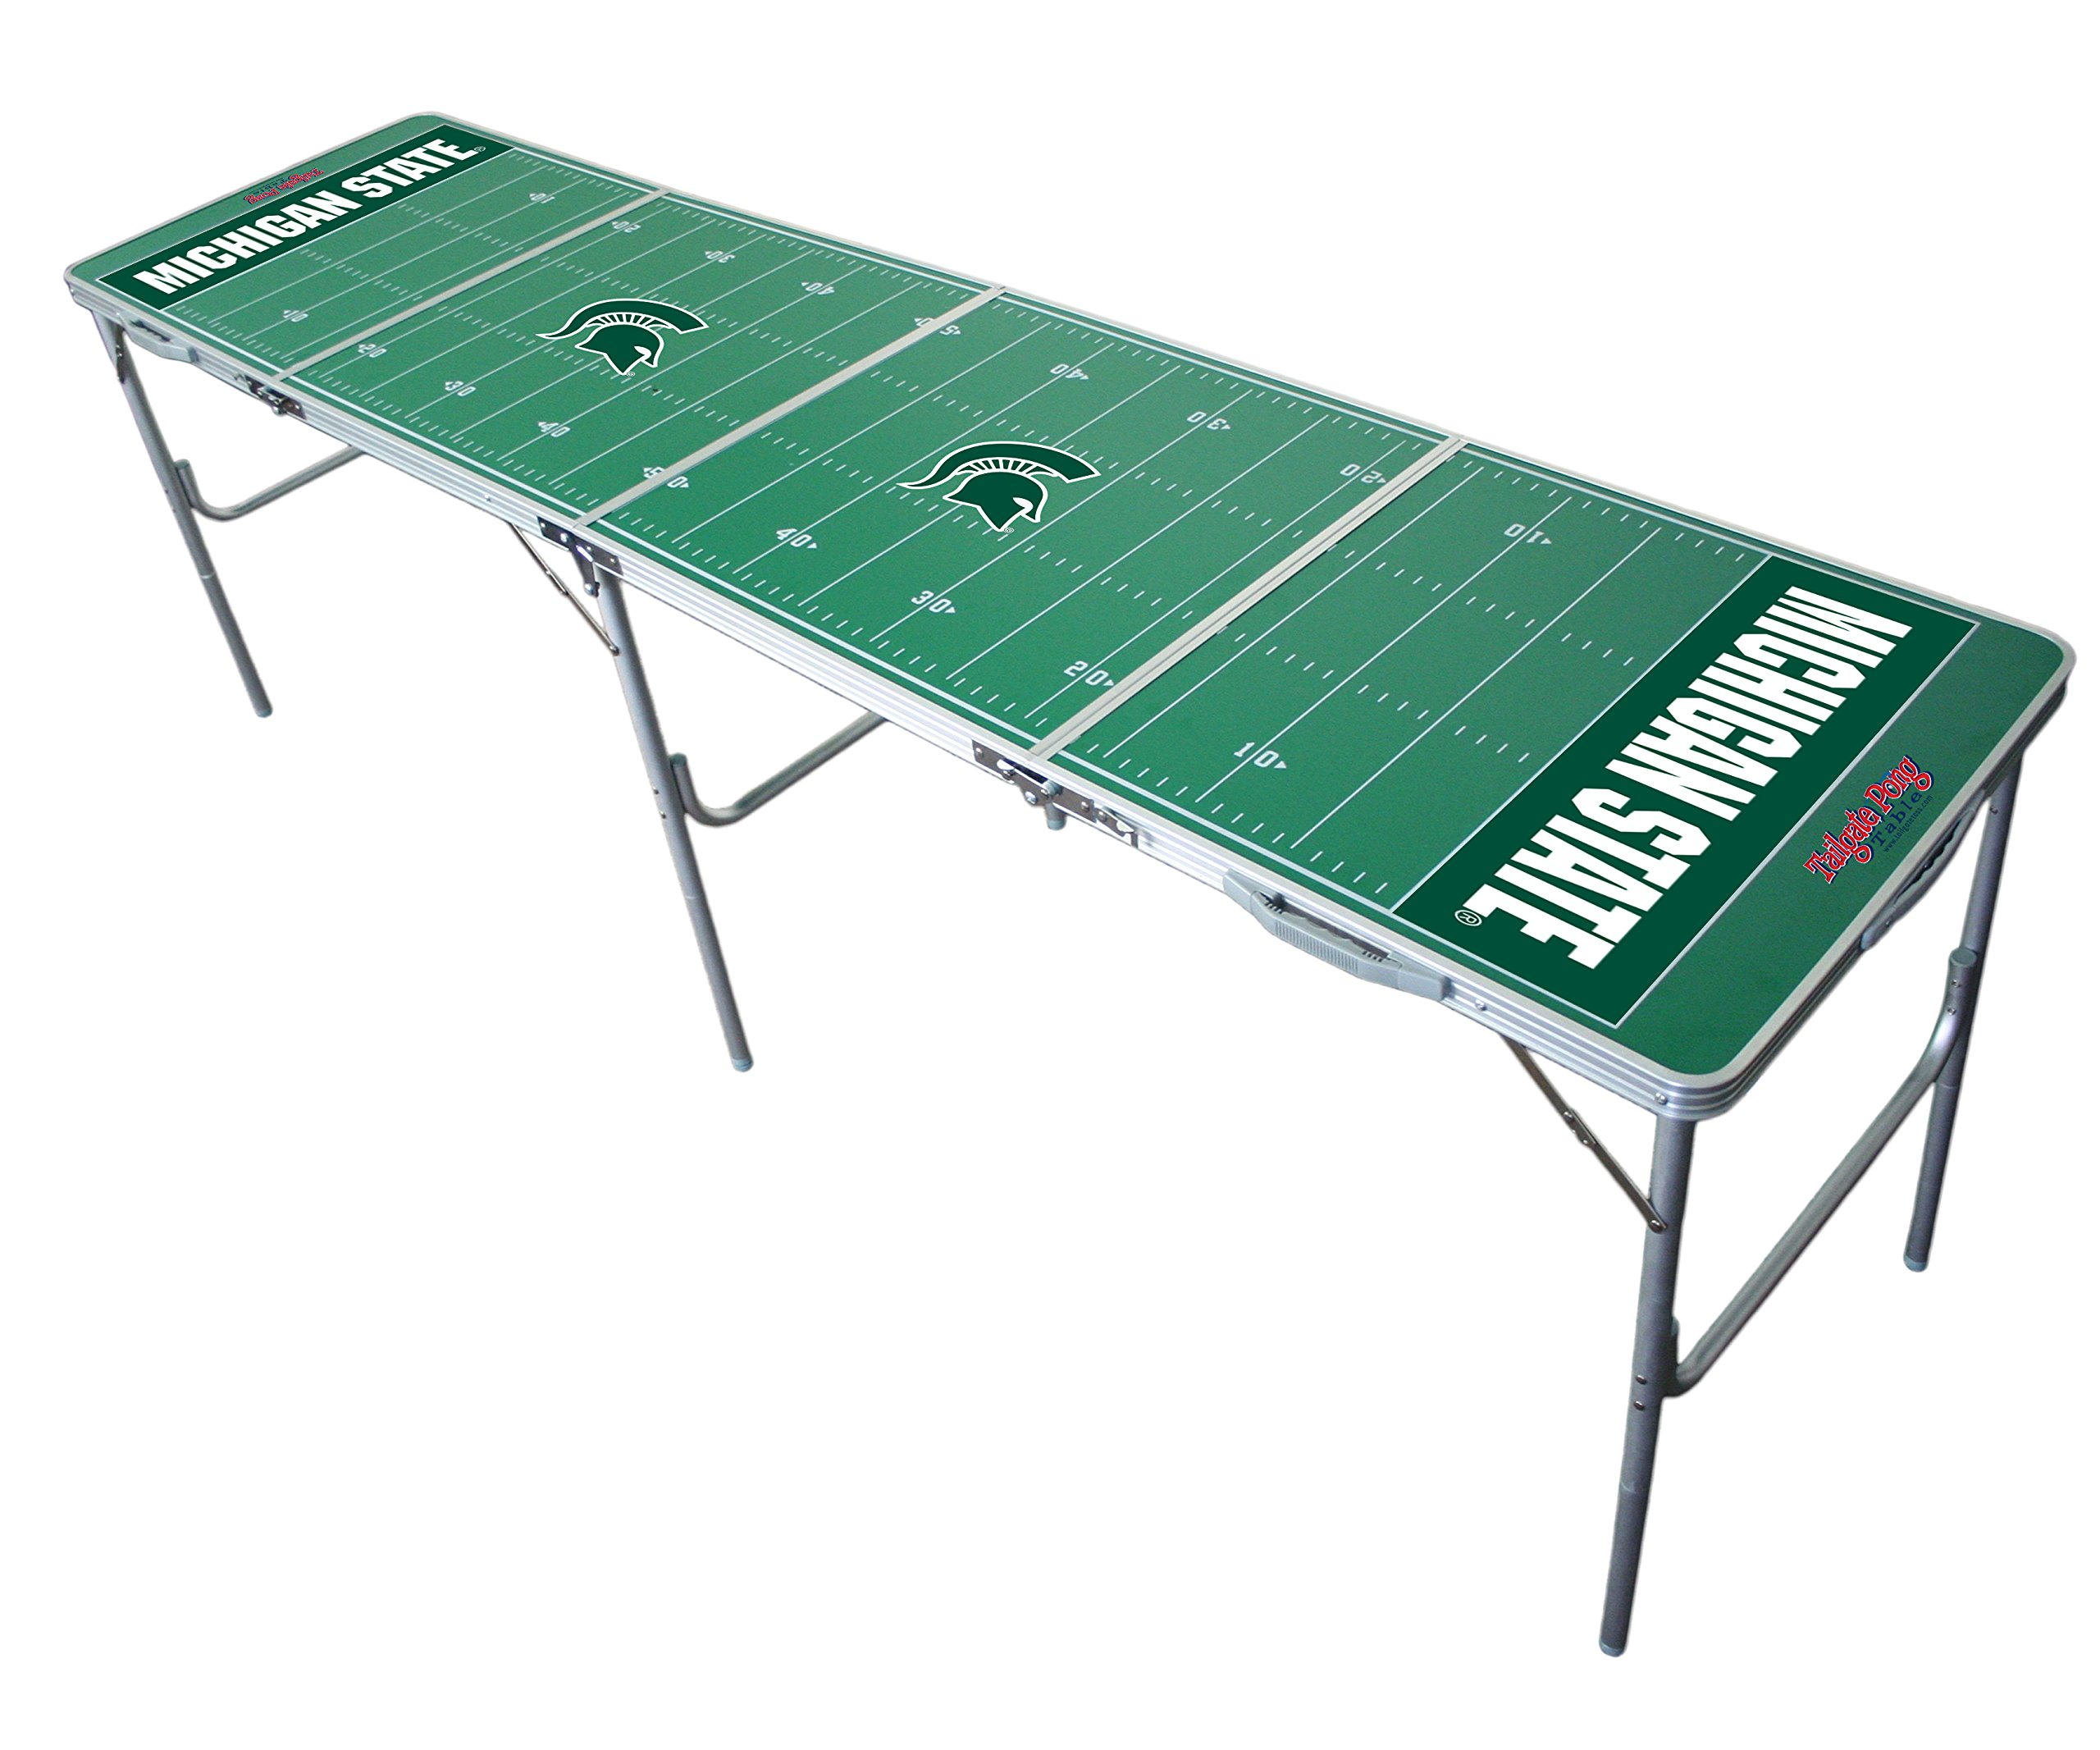 Michigan State Spartans 2x8 Tailgate Table by Wild Sports by Wild Sales